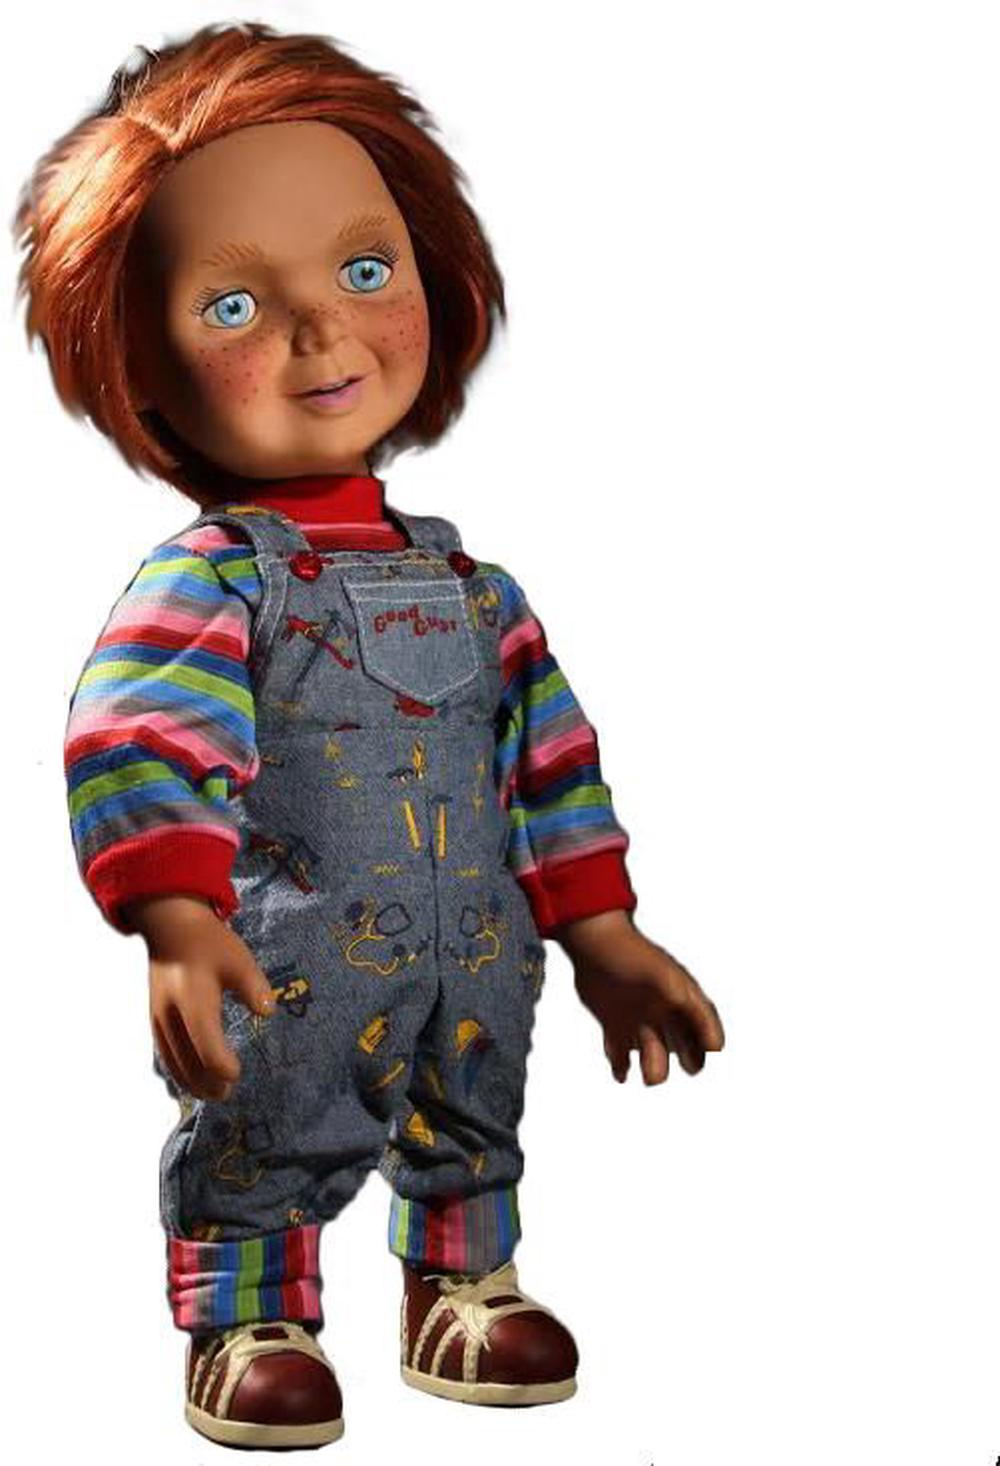 Mezco Toyz Child's Play - Good Guys Chucky Doll